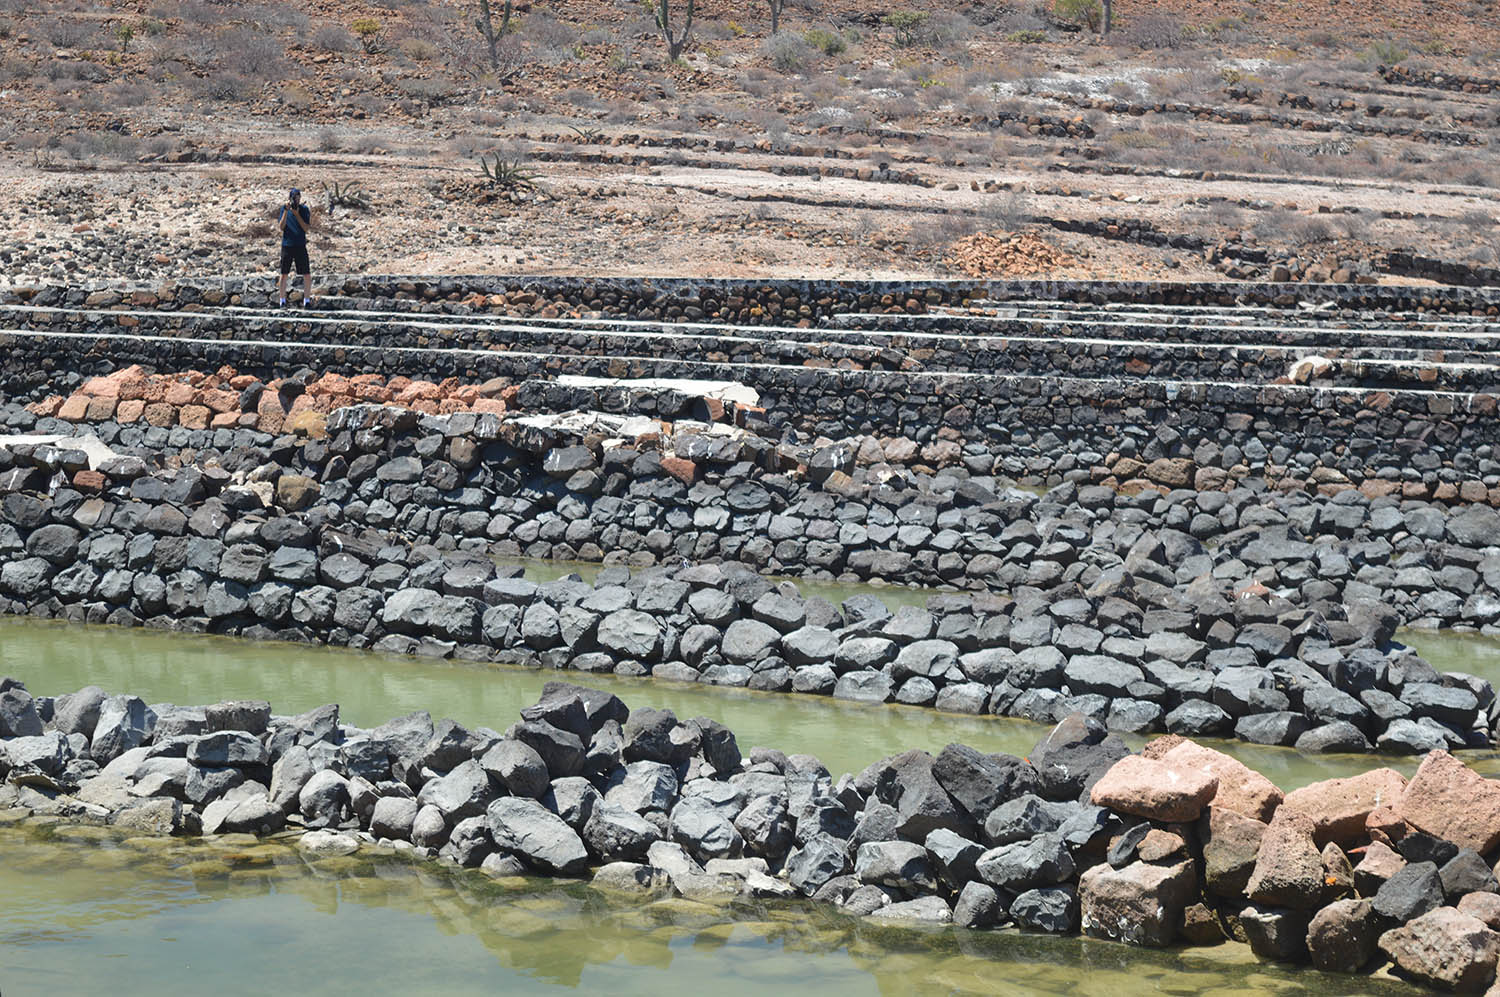 Pearl oyster beds on Isla Espiritu Santo in surprisingly good shape for being over 100 years old.